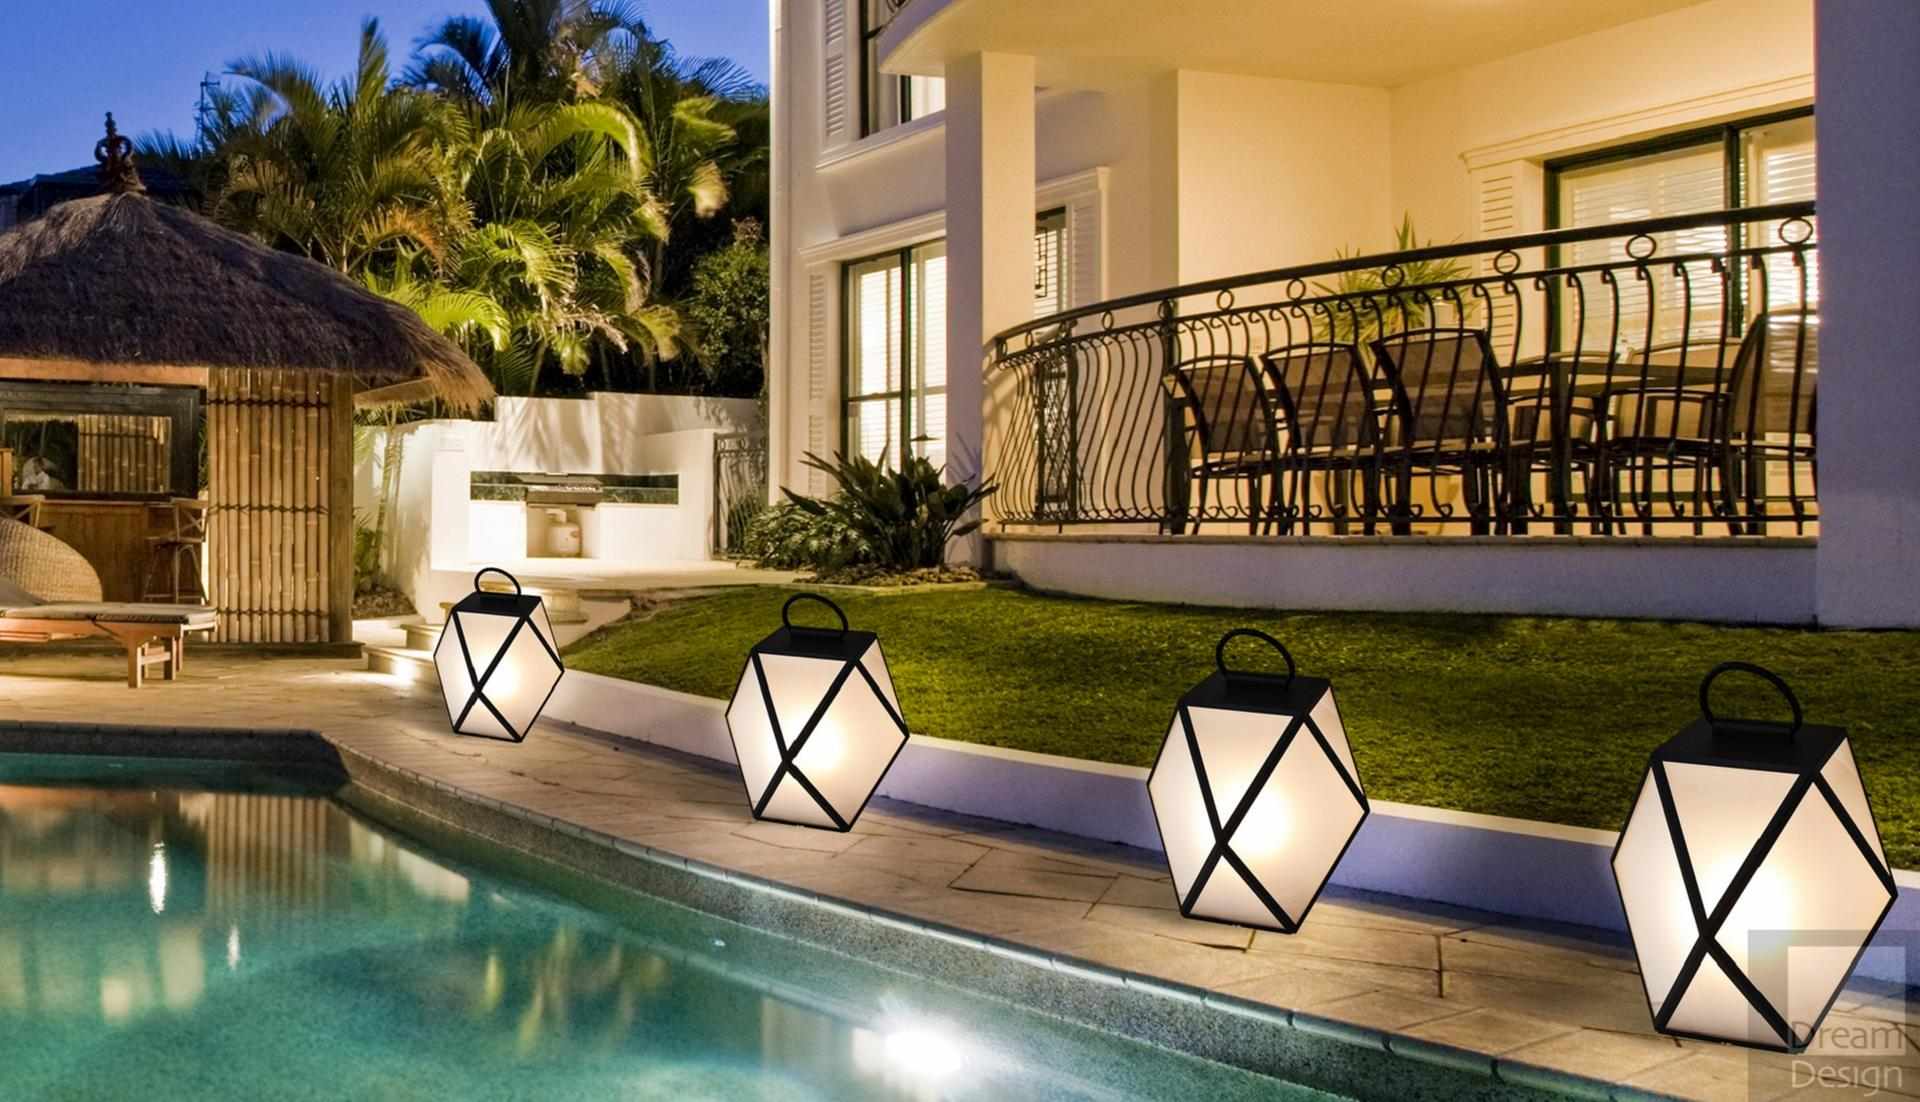 Summer outdoor lighting ideas light + building What You Need To Know About Light + Building Summer outdoor lighting ideas light + building What You Need To Know About Light + Building Summer outdoor lighting ideas